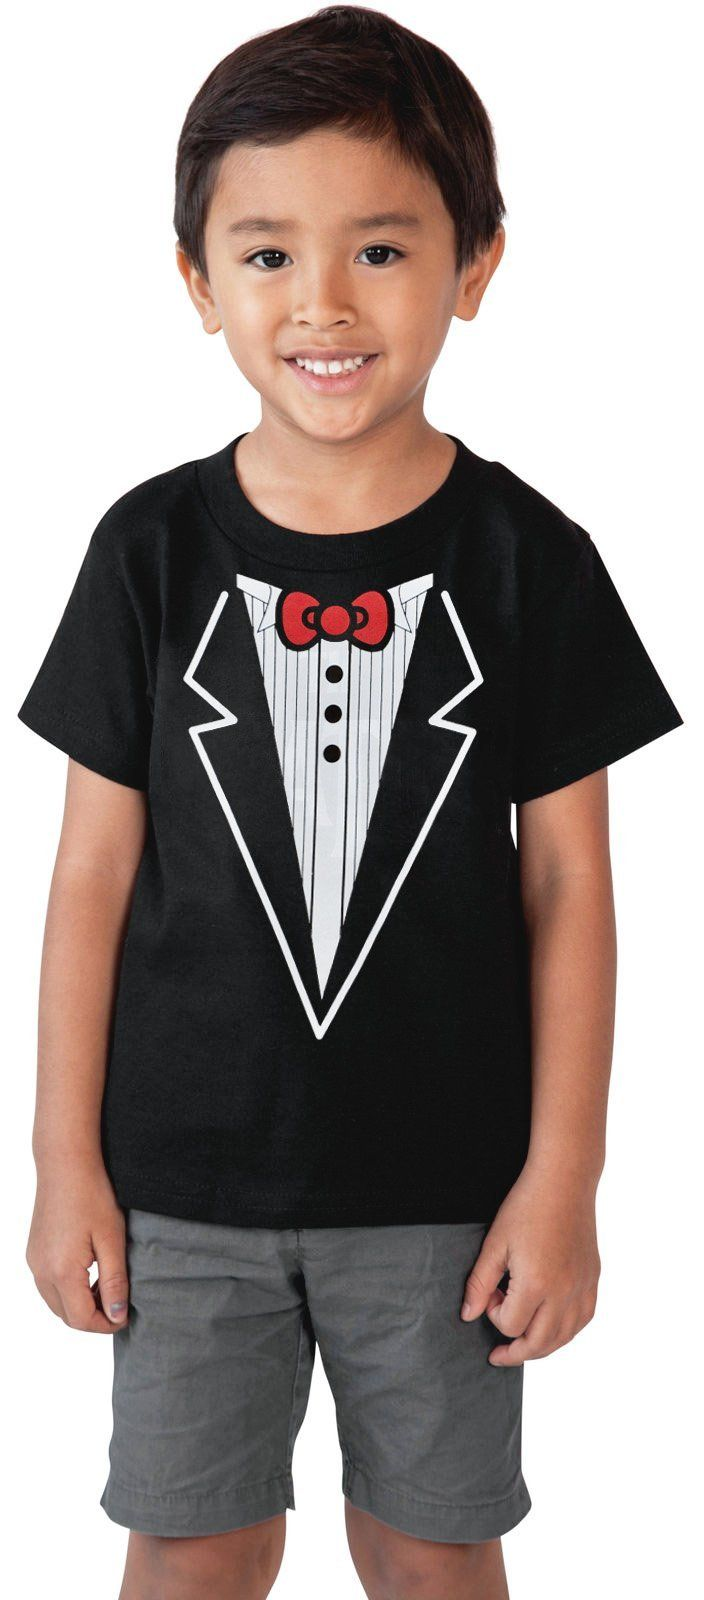 Best 25+ Boys tuxedo ideas on Pinterest